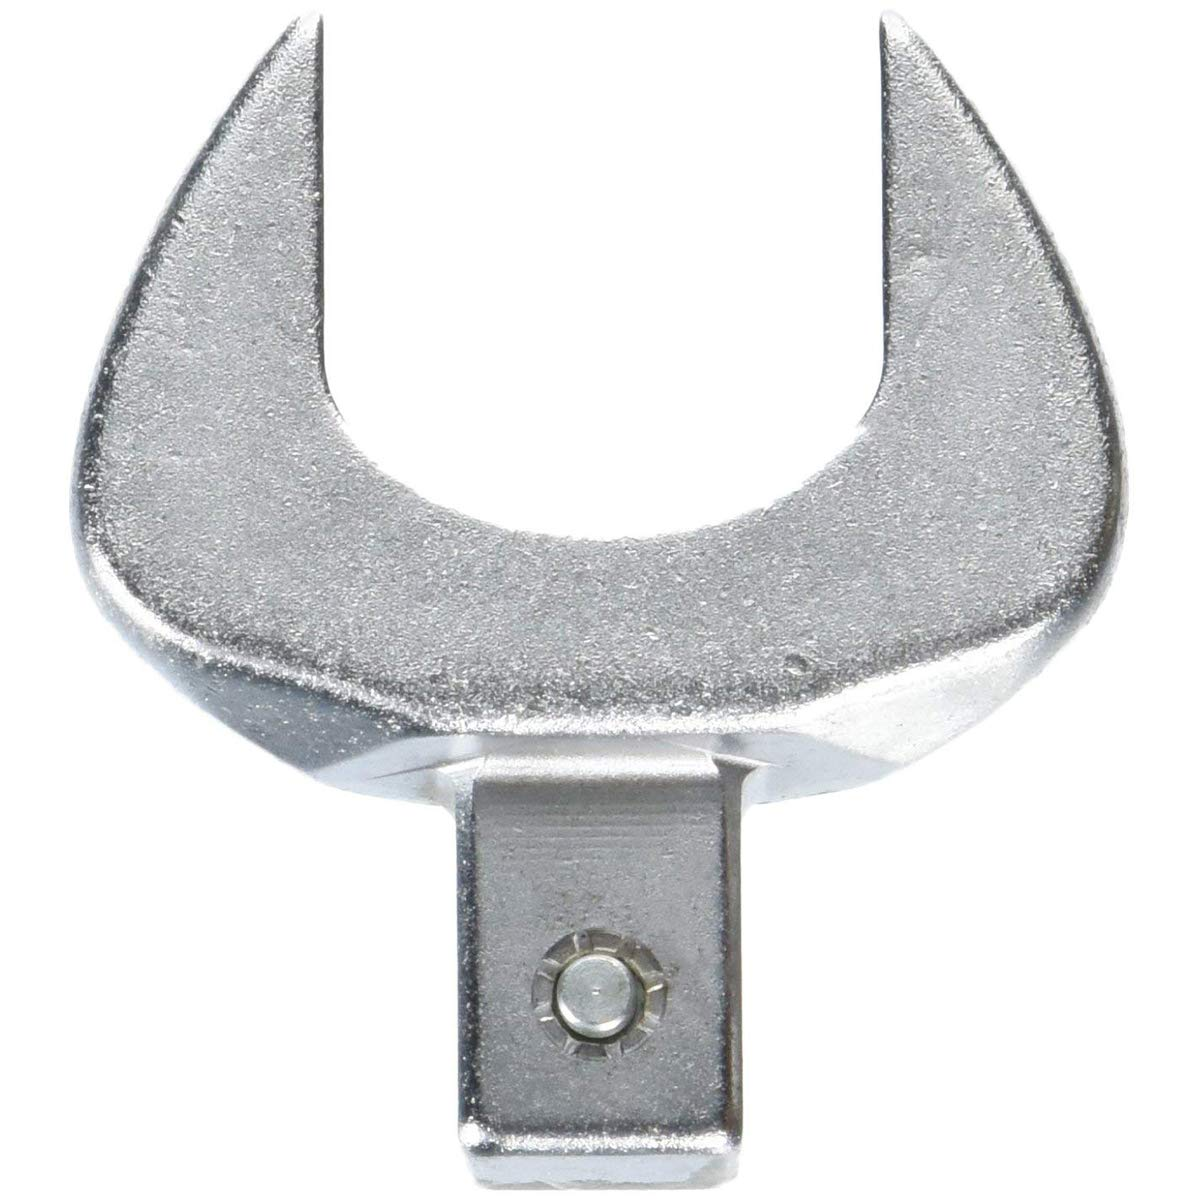 Heyco 794313480 Open ended jaw wrench794 34mm